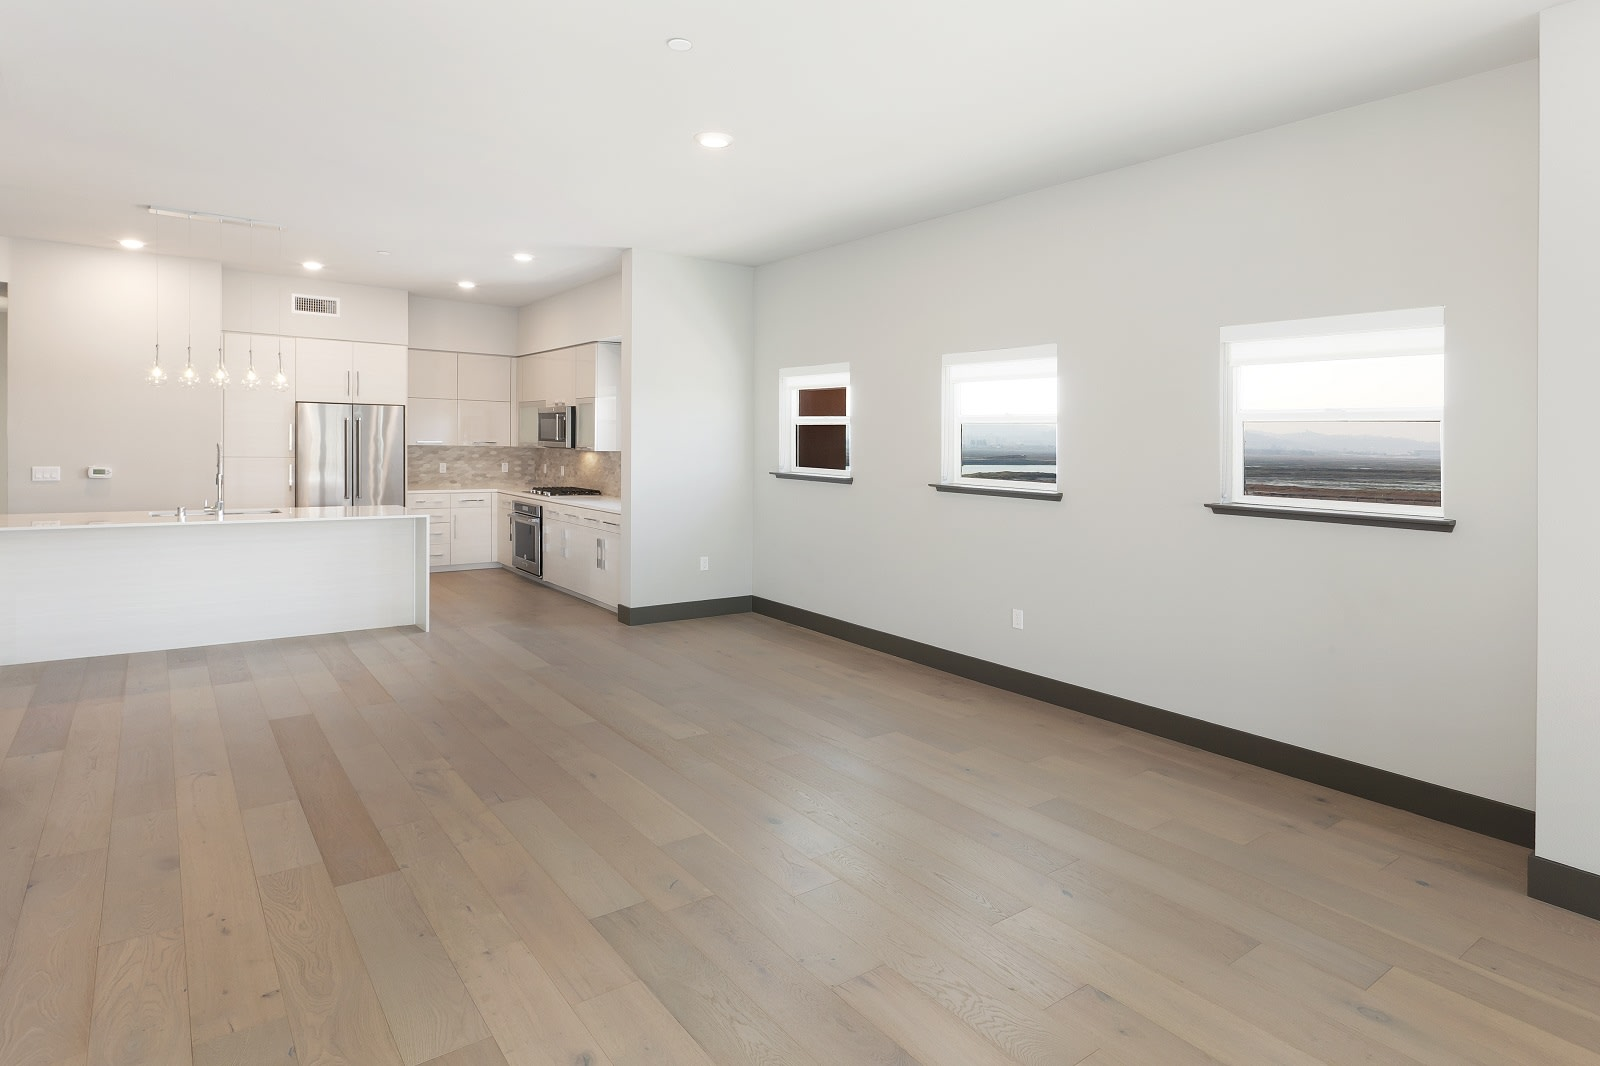 Hardwood Floors in Penthouses at Blu Harbor by Windsor, CA, 94063